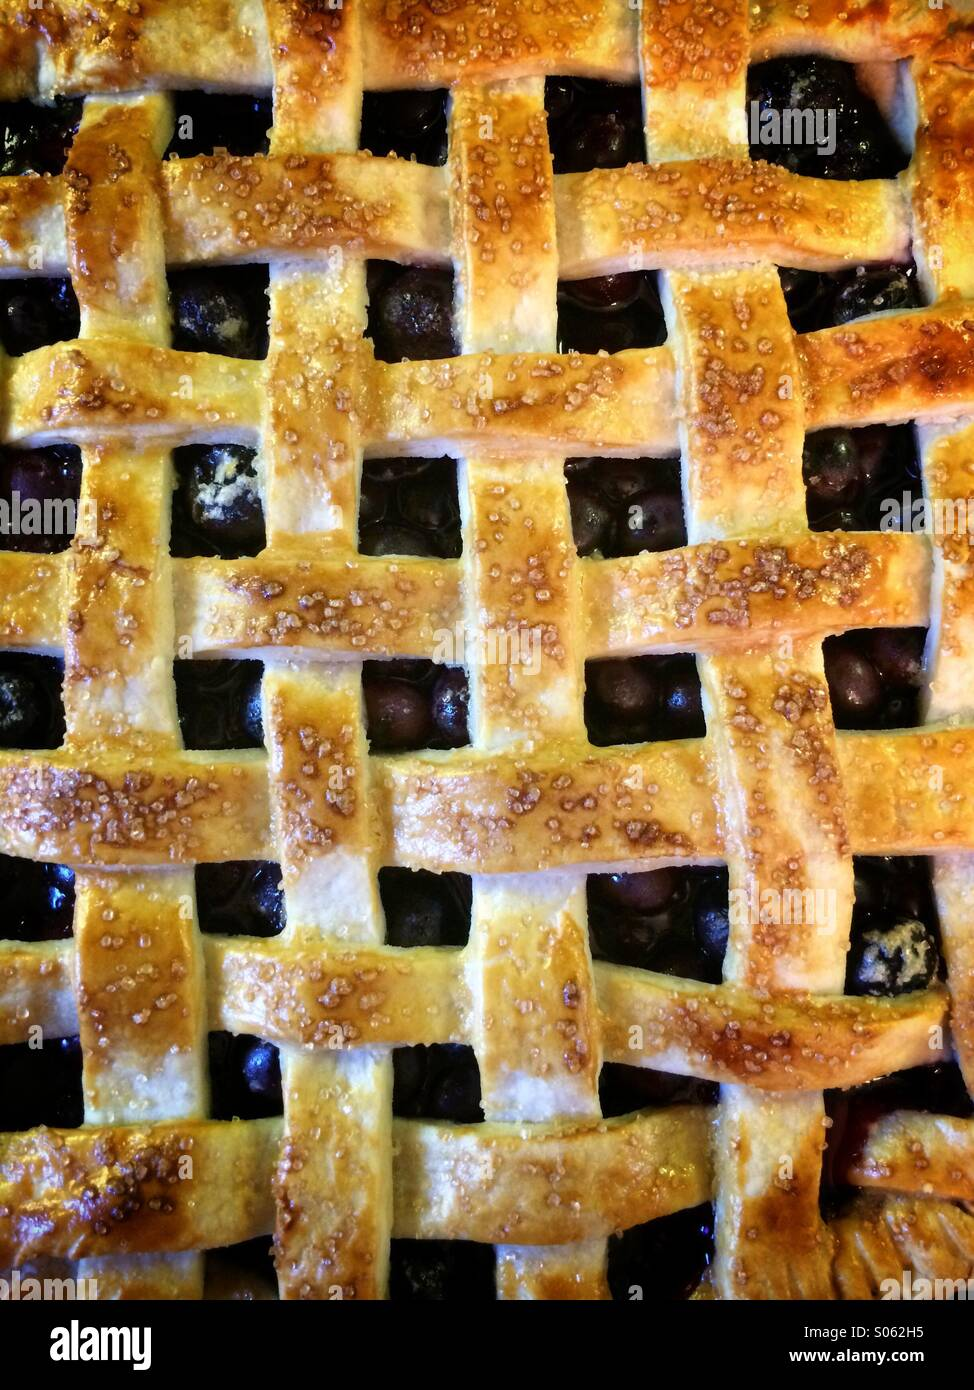 Top view of a lattice work blueberry pie - Stock Image